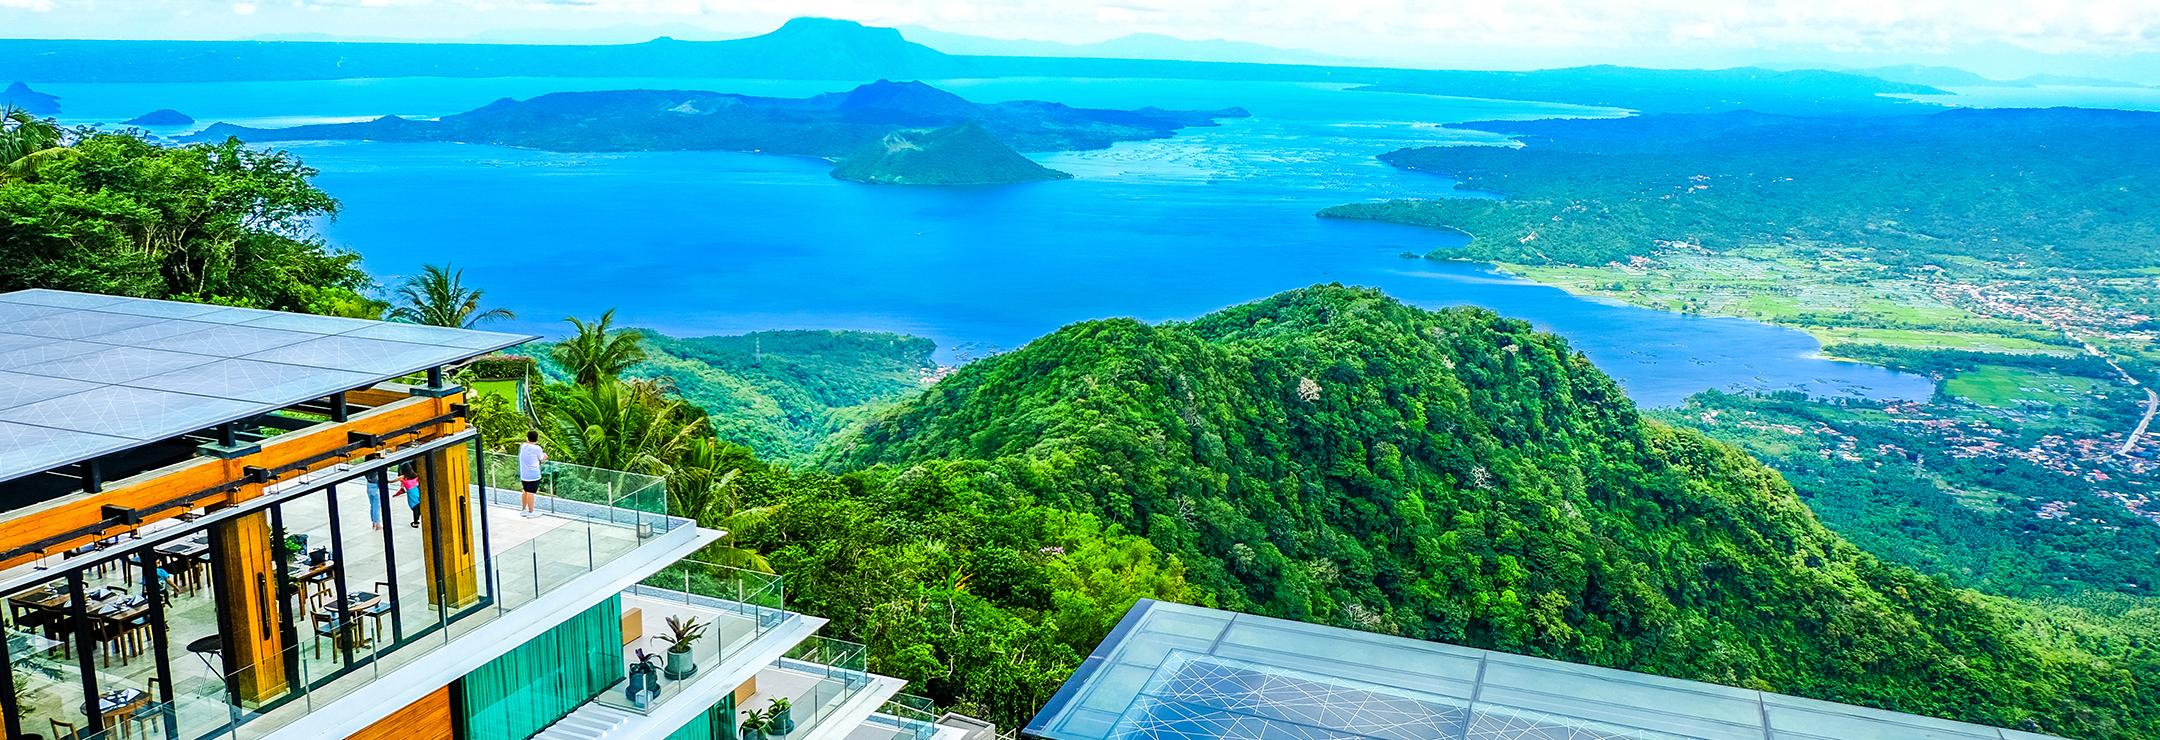 Hotels in Tagaytay